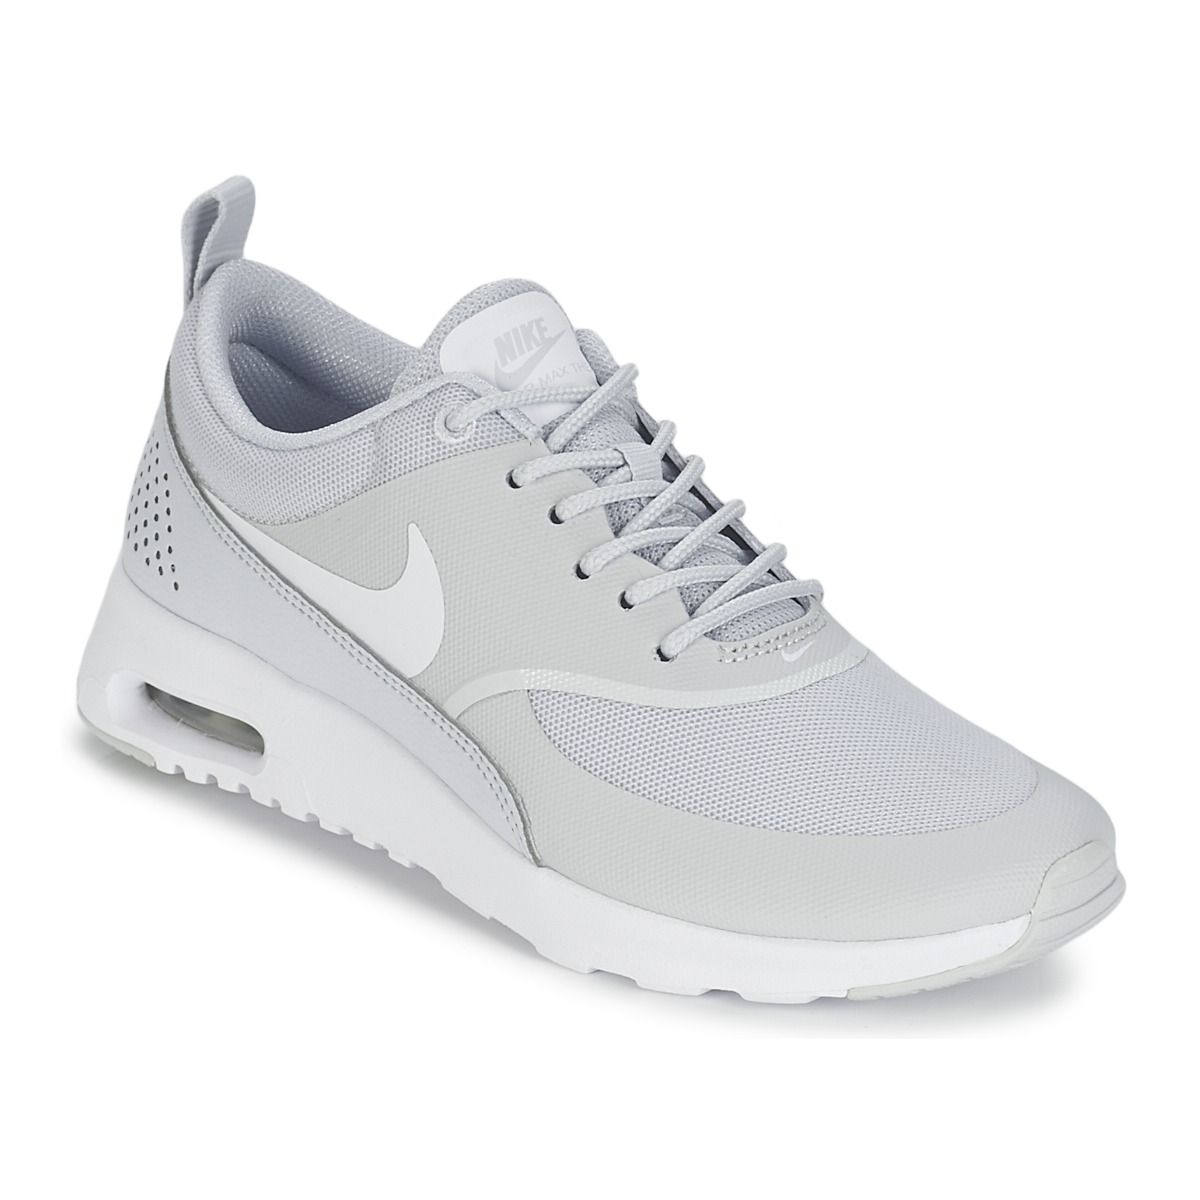 wholesale dealer 24c26 6baa8 Baskets basses Nike AIR MAX THEA W Gris prix promo Baskets Femme Spartoo  119.00 €